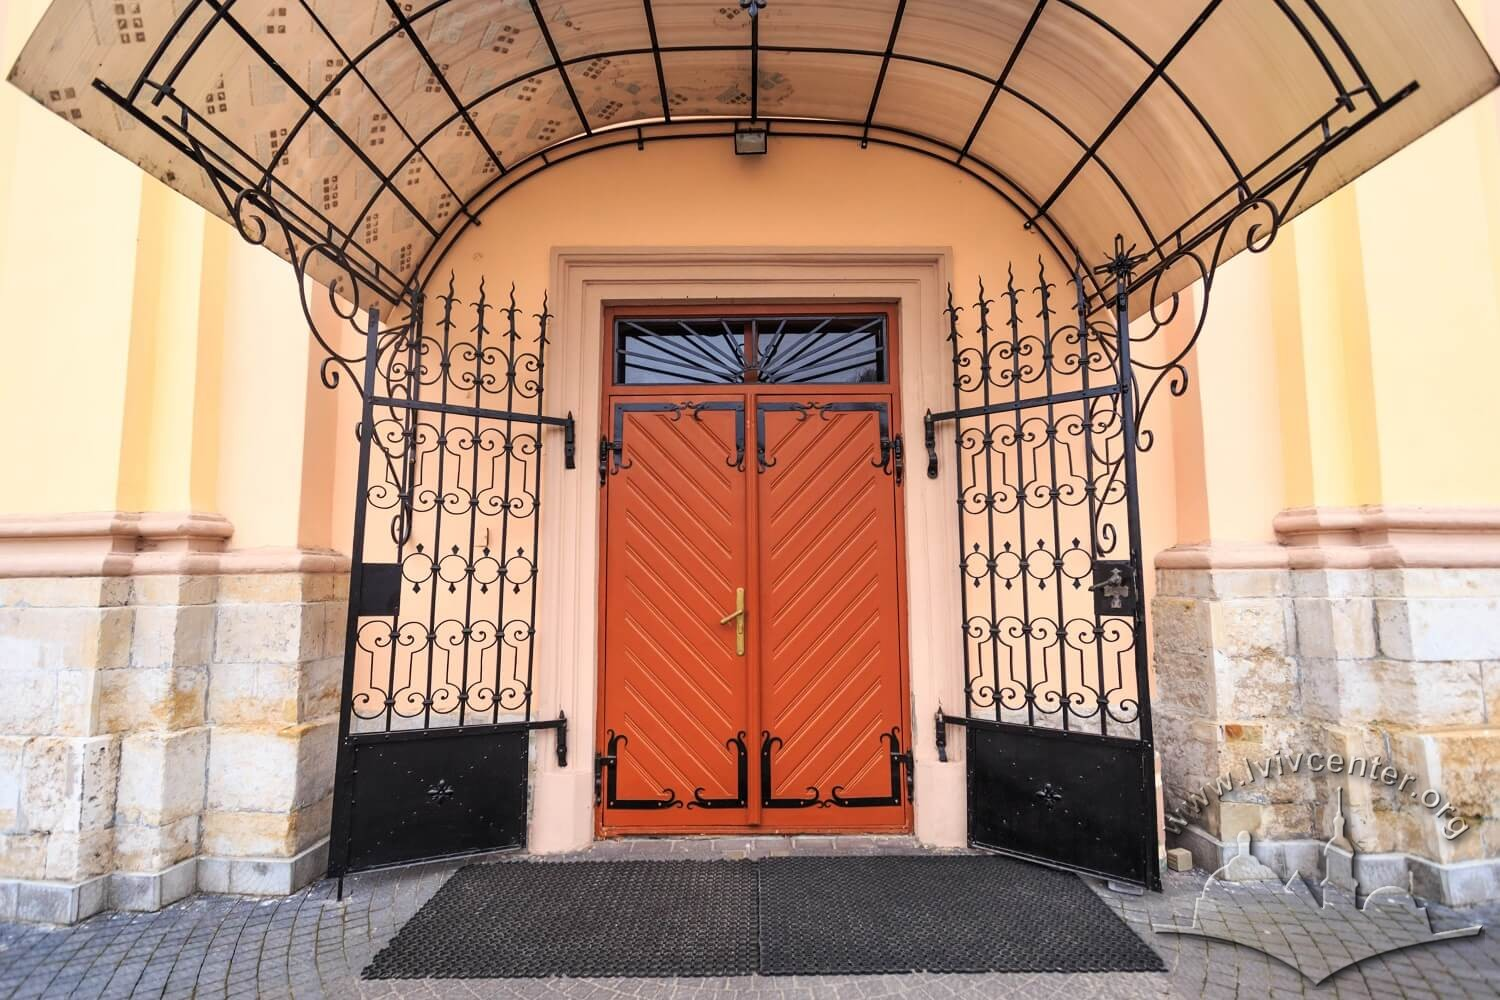 Vul. Zhovkivska, 8. The entrance to the prayer hall building/Photo courtesy of Nazarii Parkhomyk, 2015